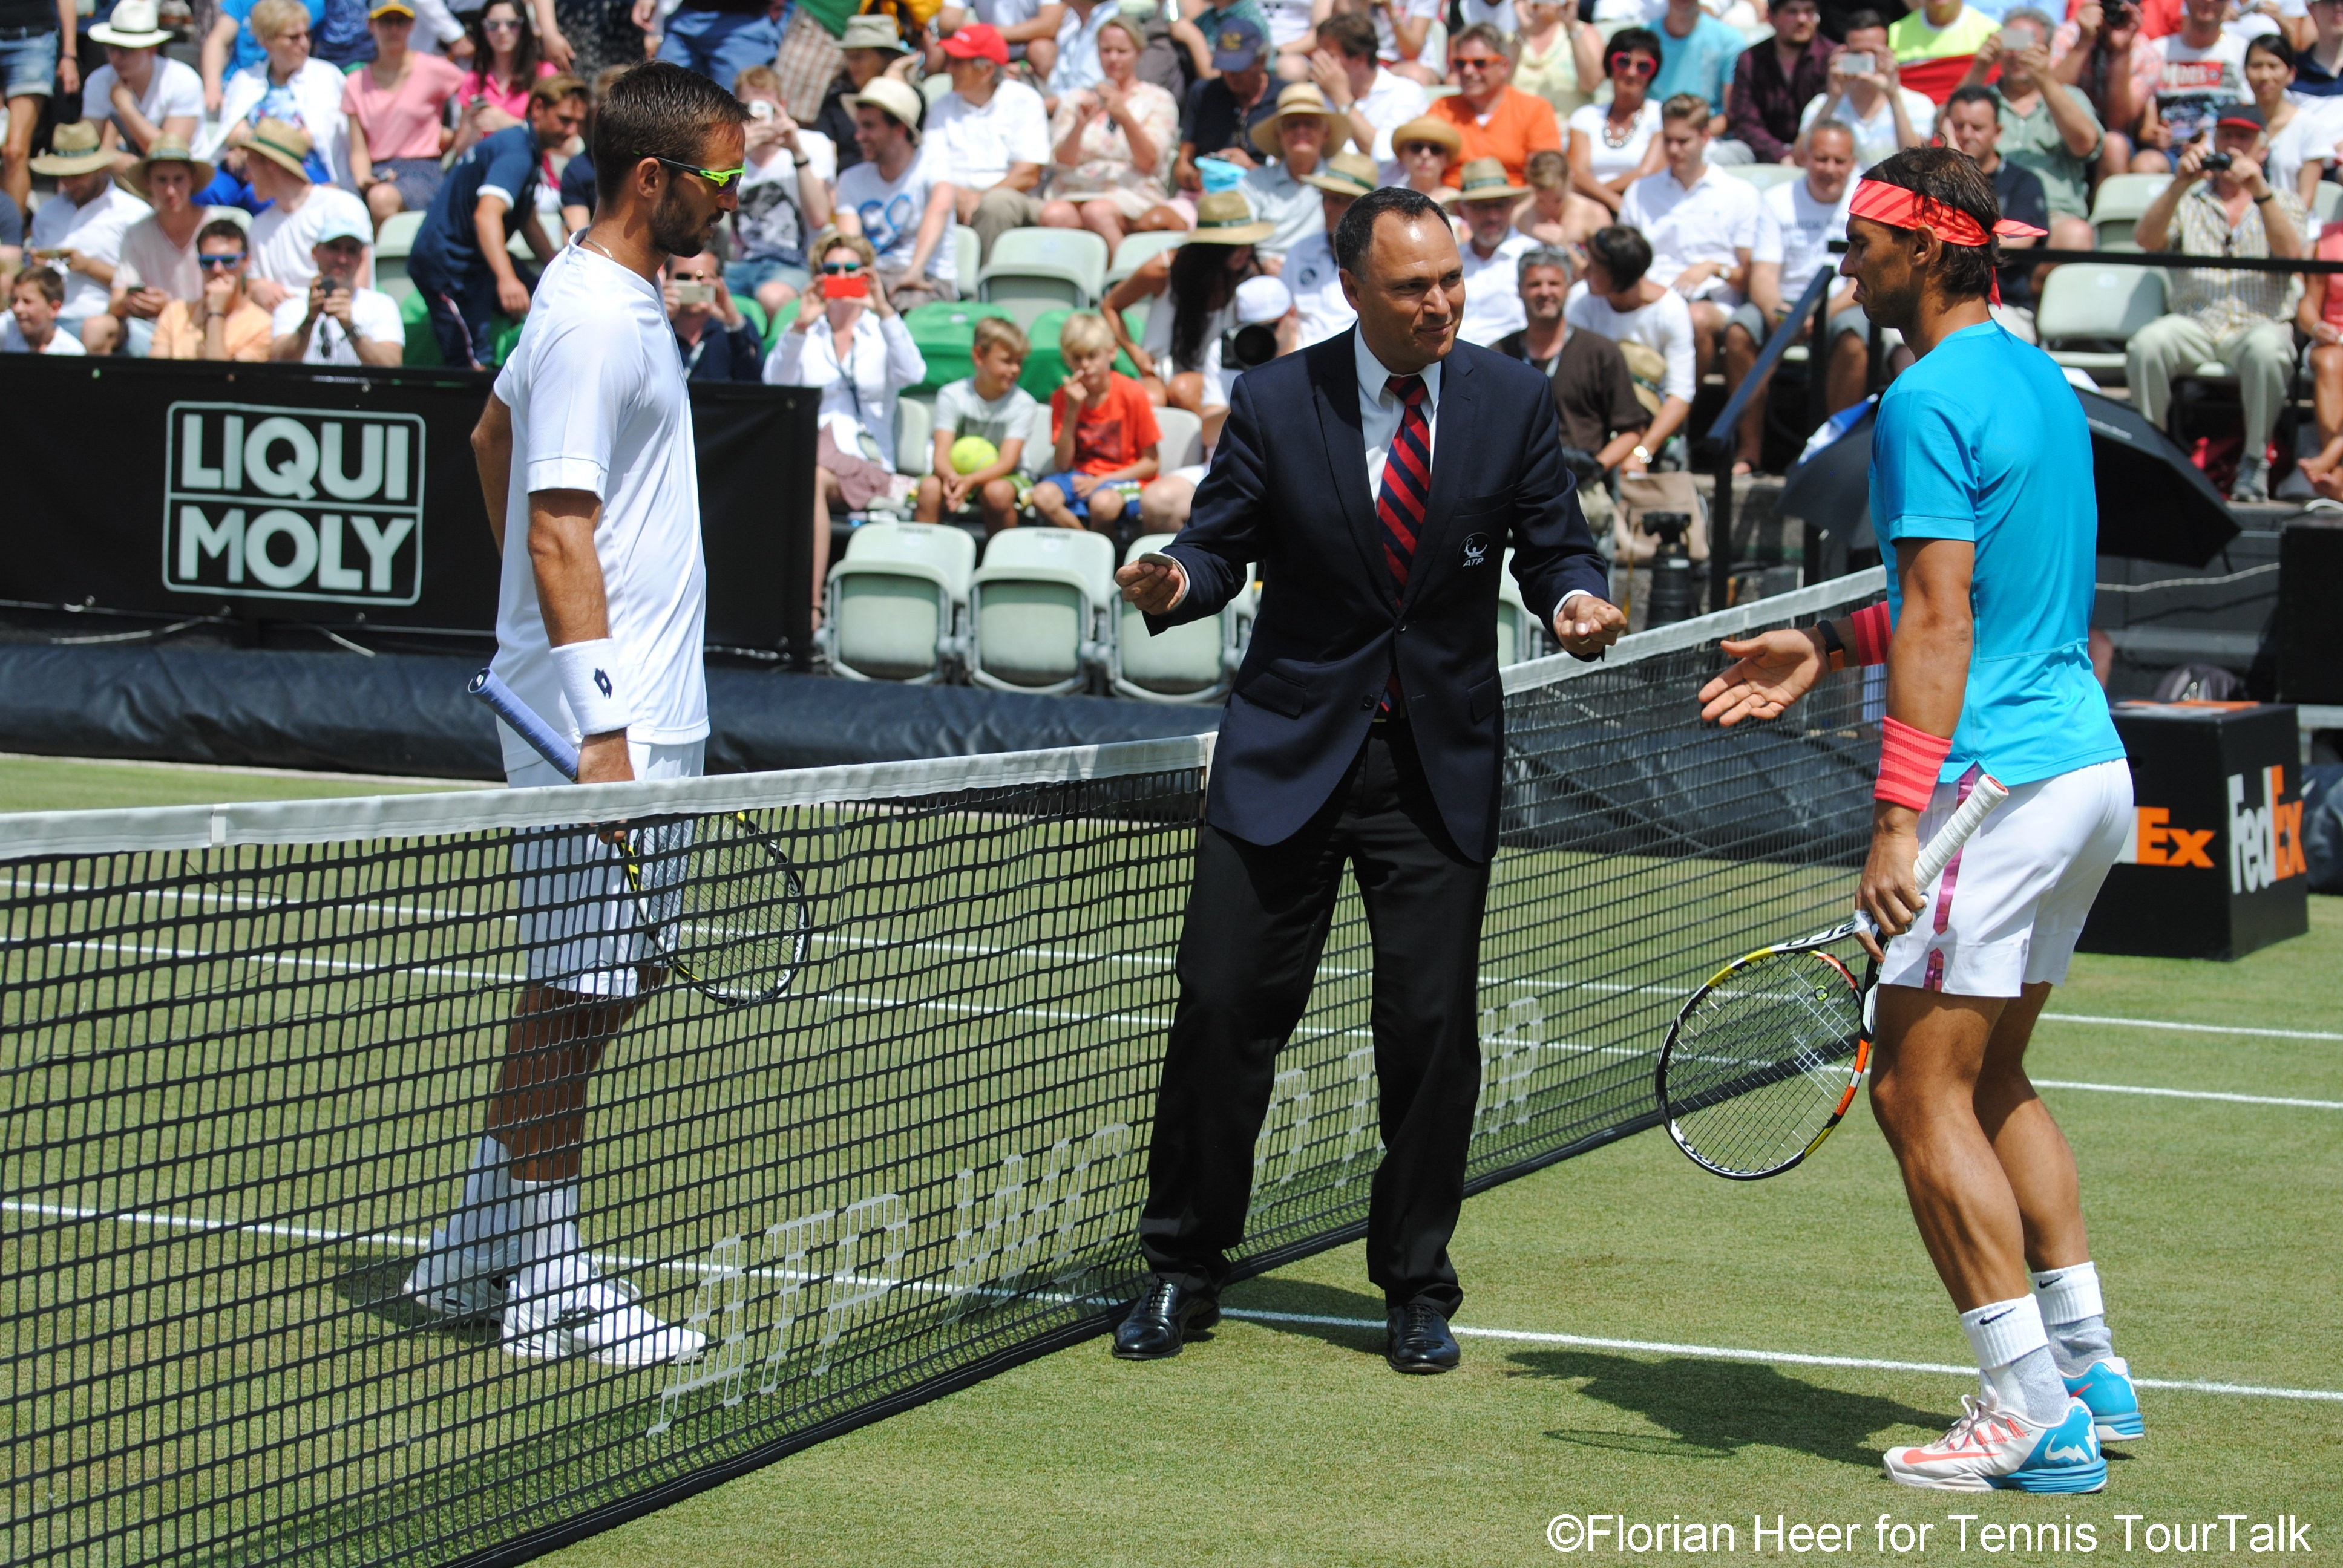 Rafael Nadal And Viktor Troicki Met For The Fifth Time On The Tour The Spaniard